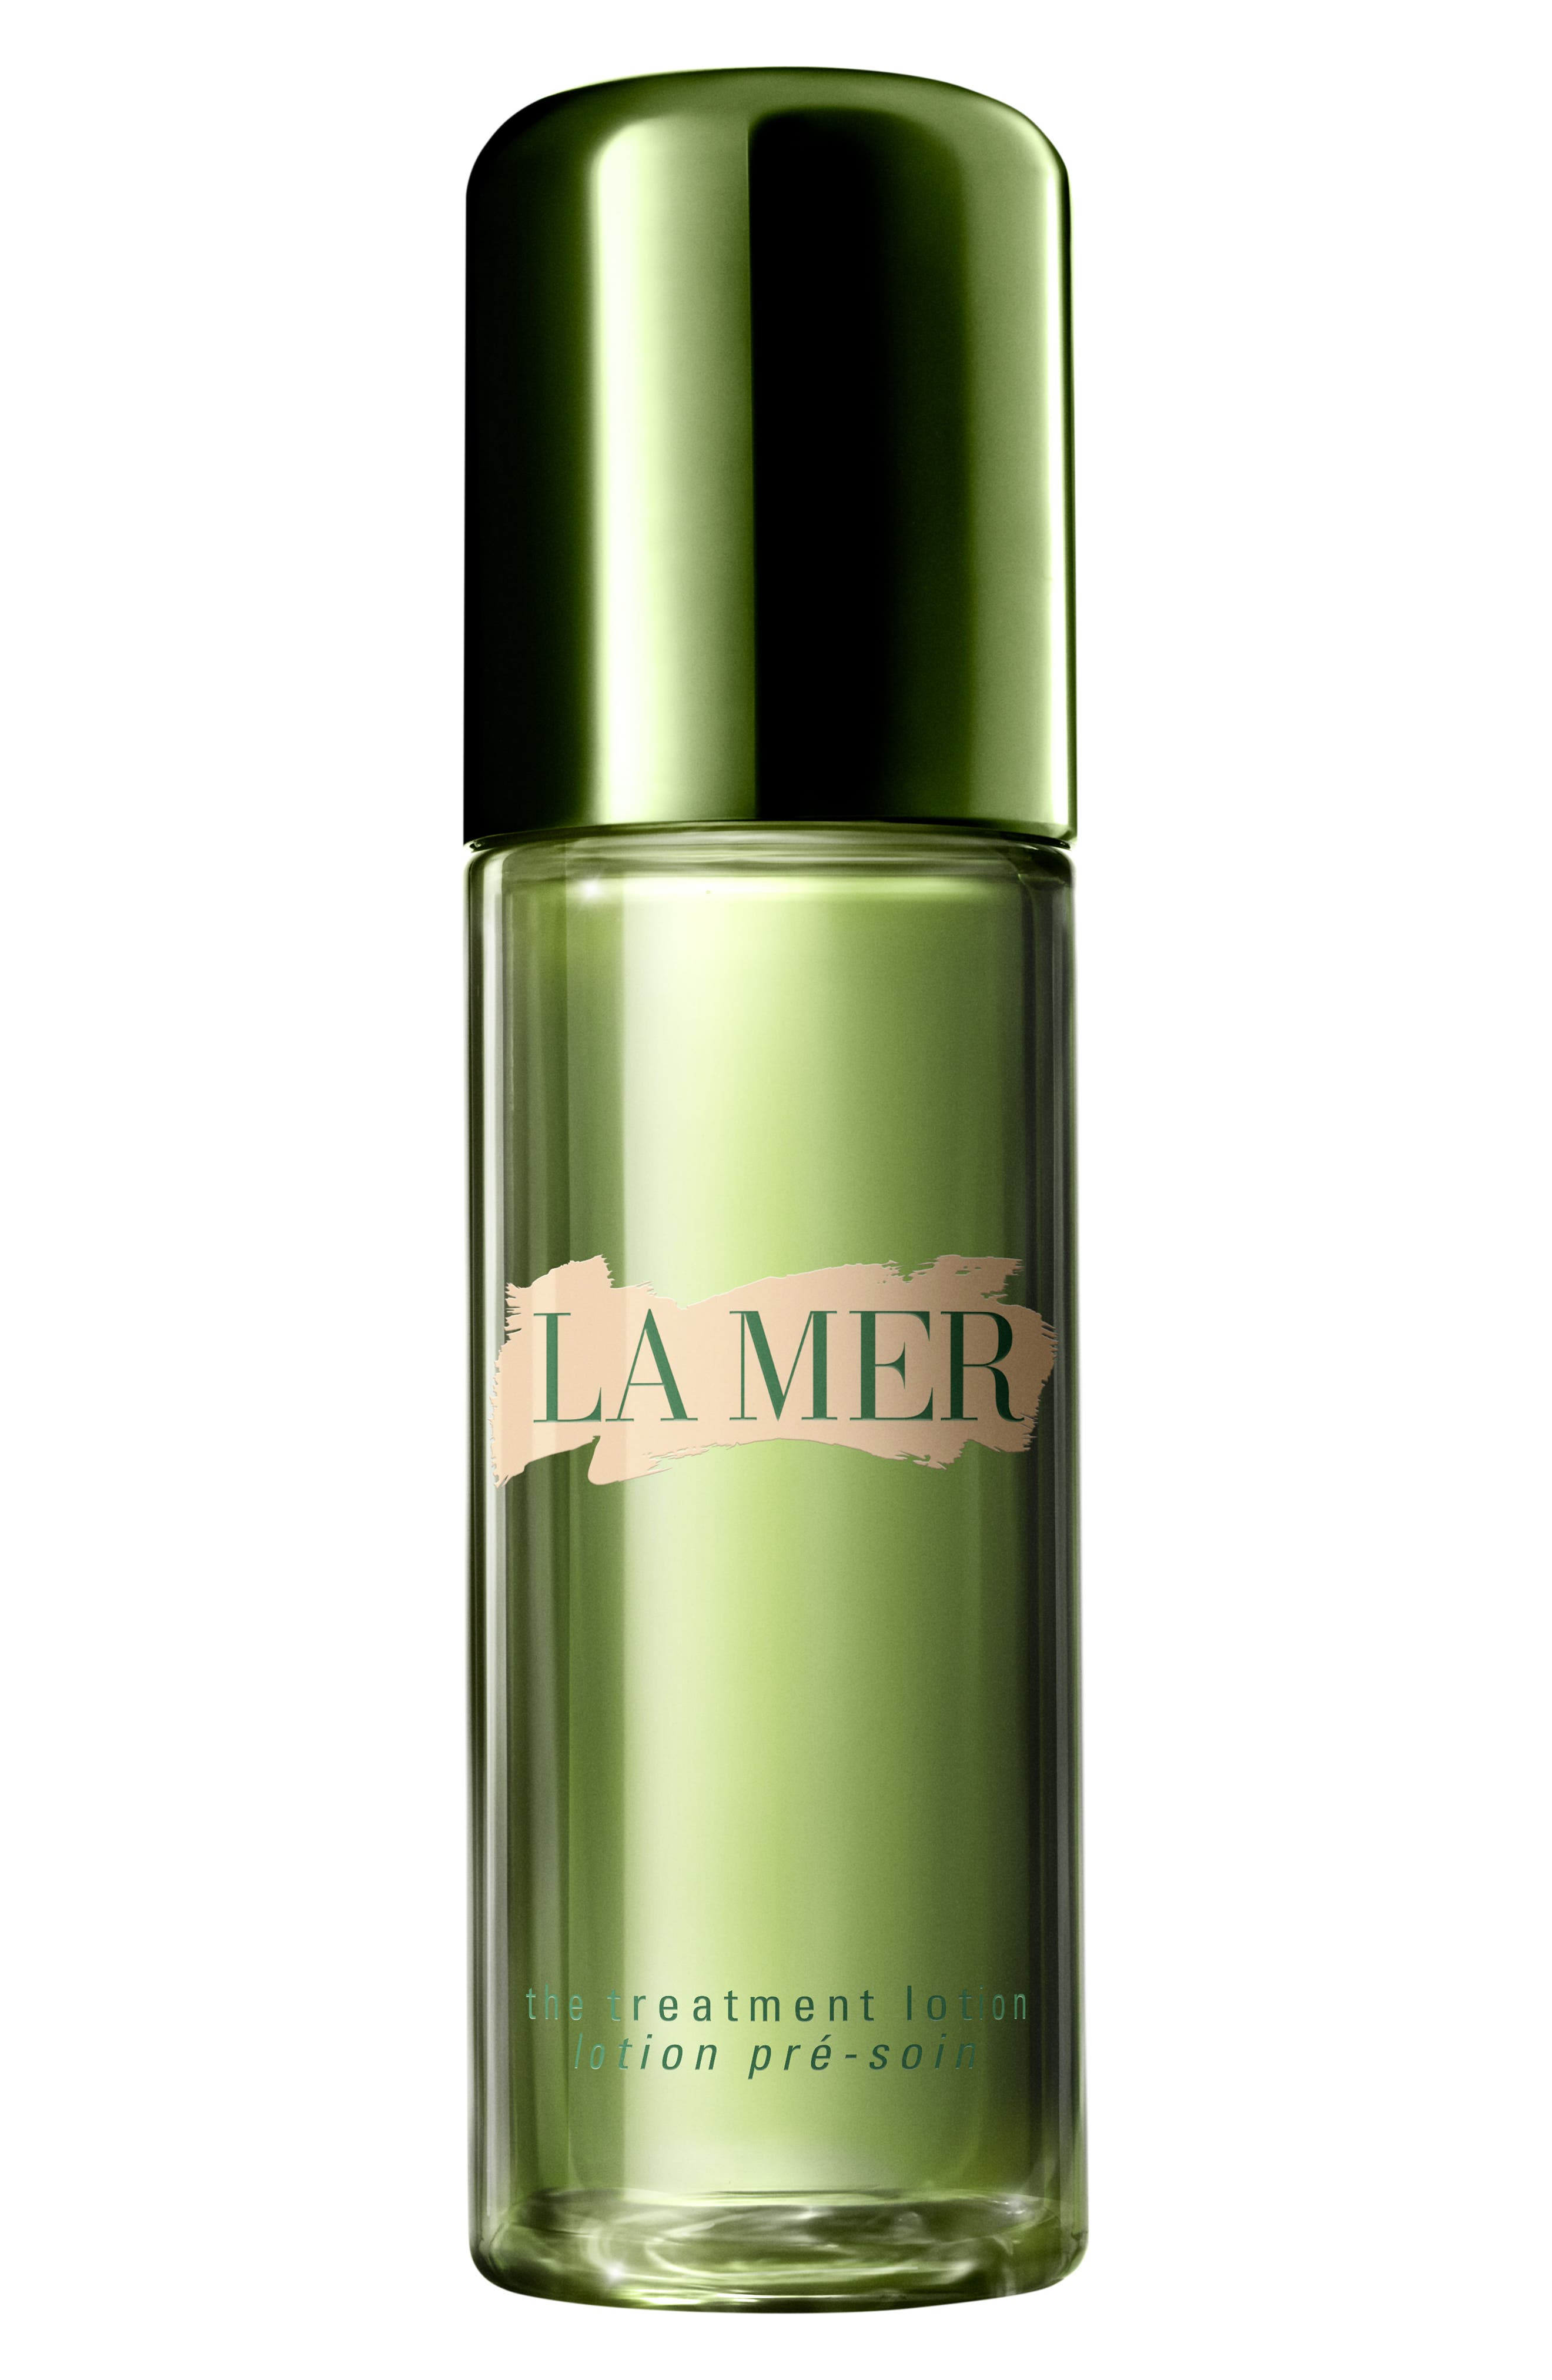 La Mer The Treatment Lotion Mini